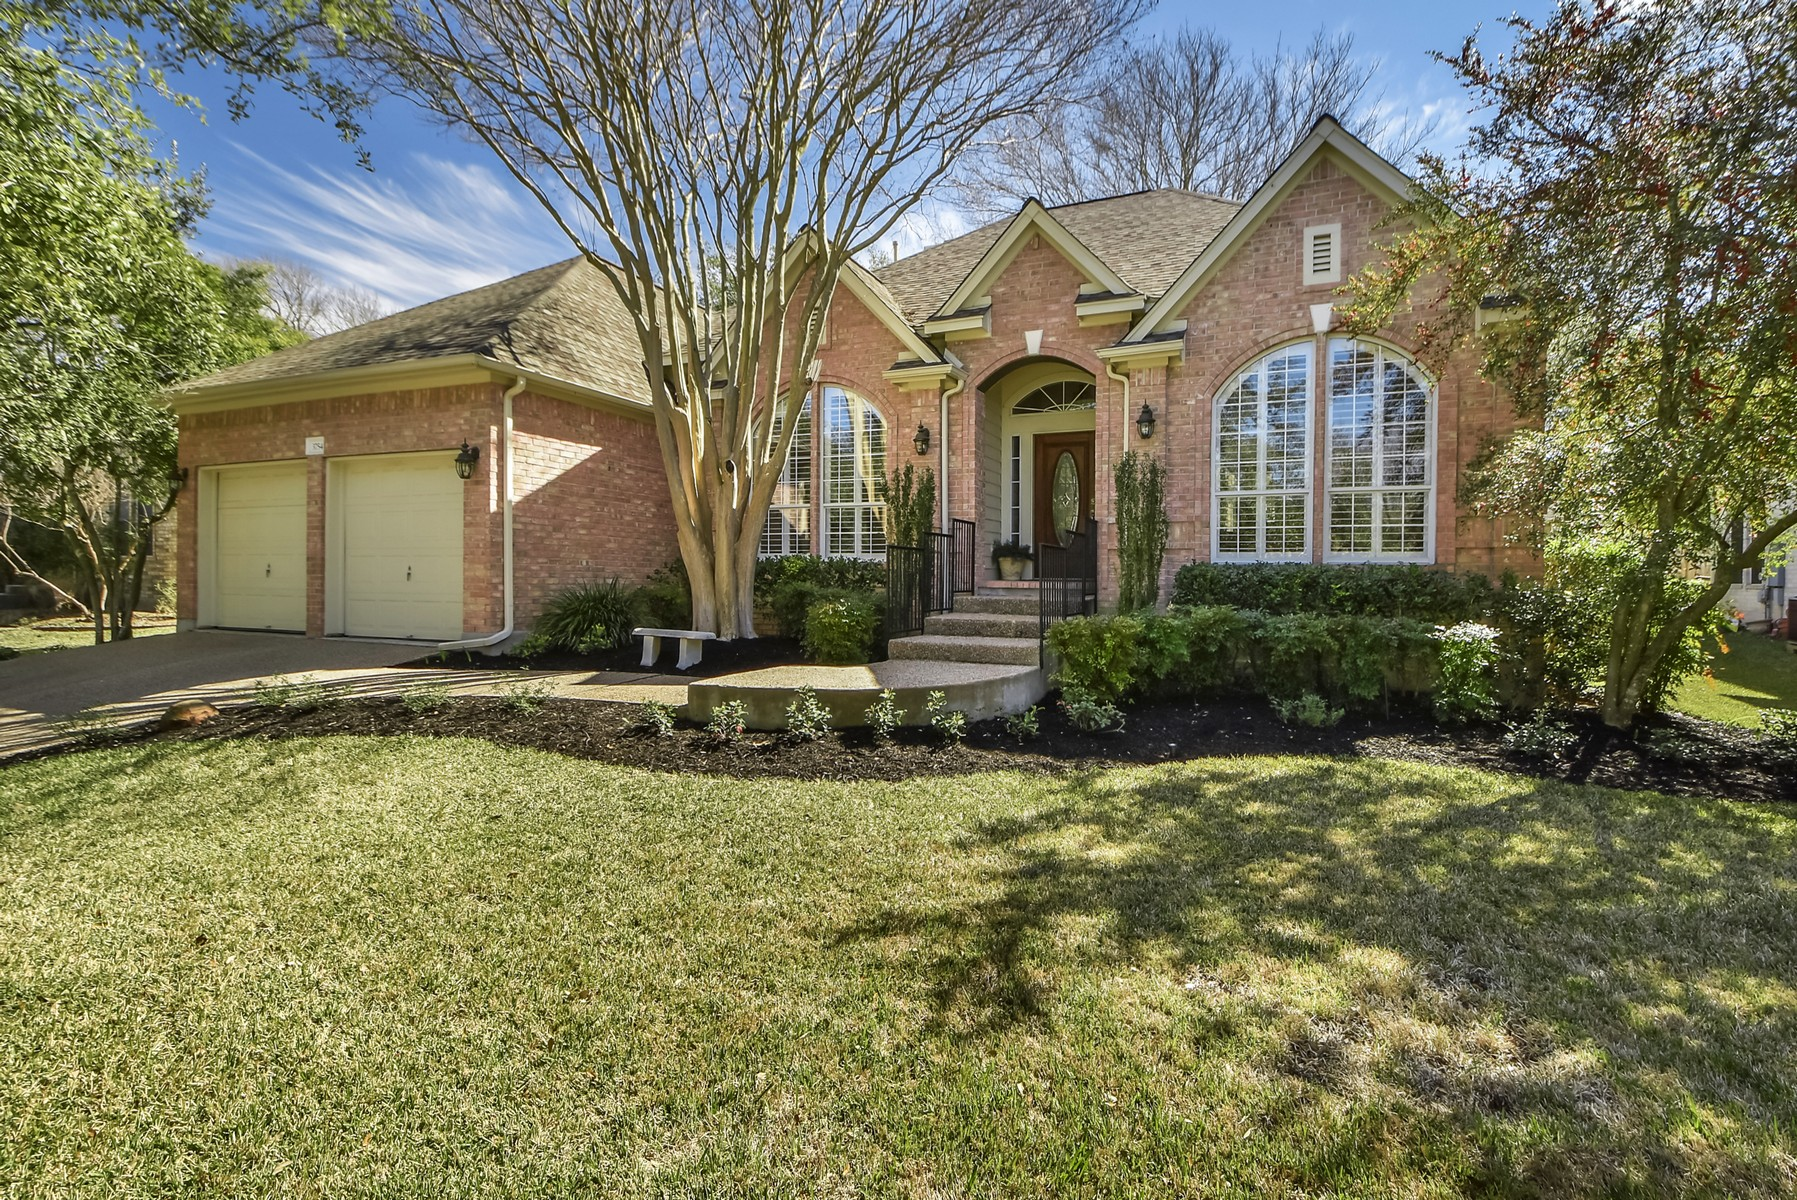 Single Family Home for Sale at Lovely Single Story in Forest Creek 3754 Royal Port Rush Dr Round Rock, Texas 78664 United States